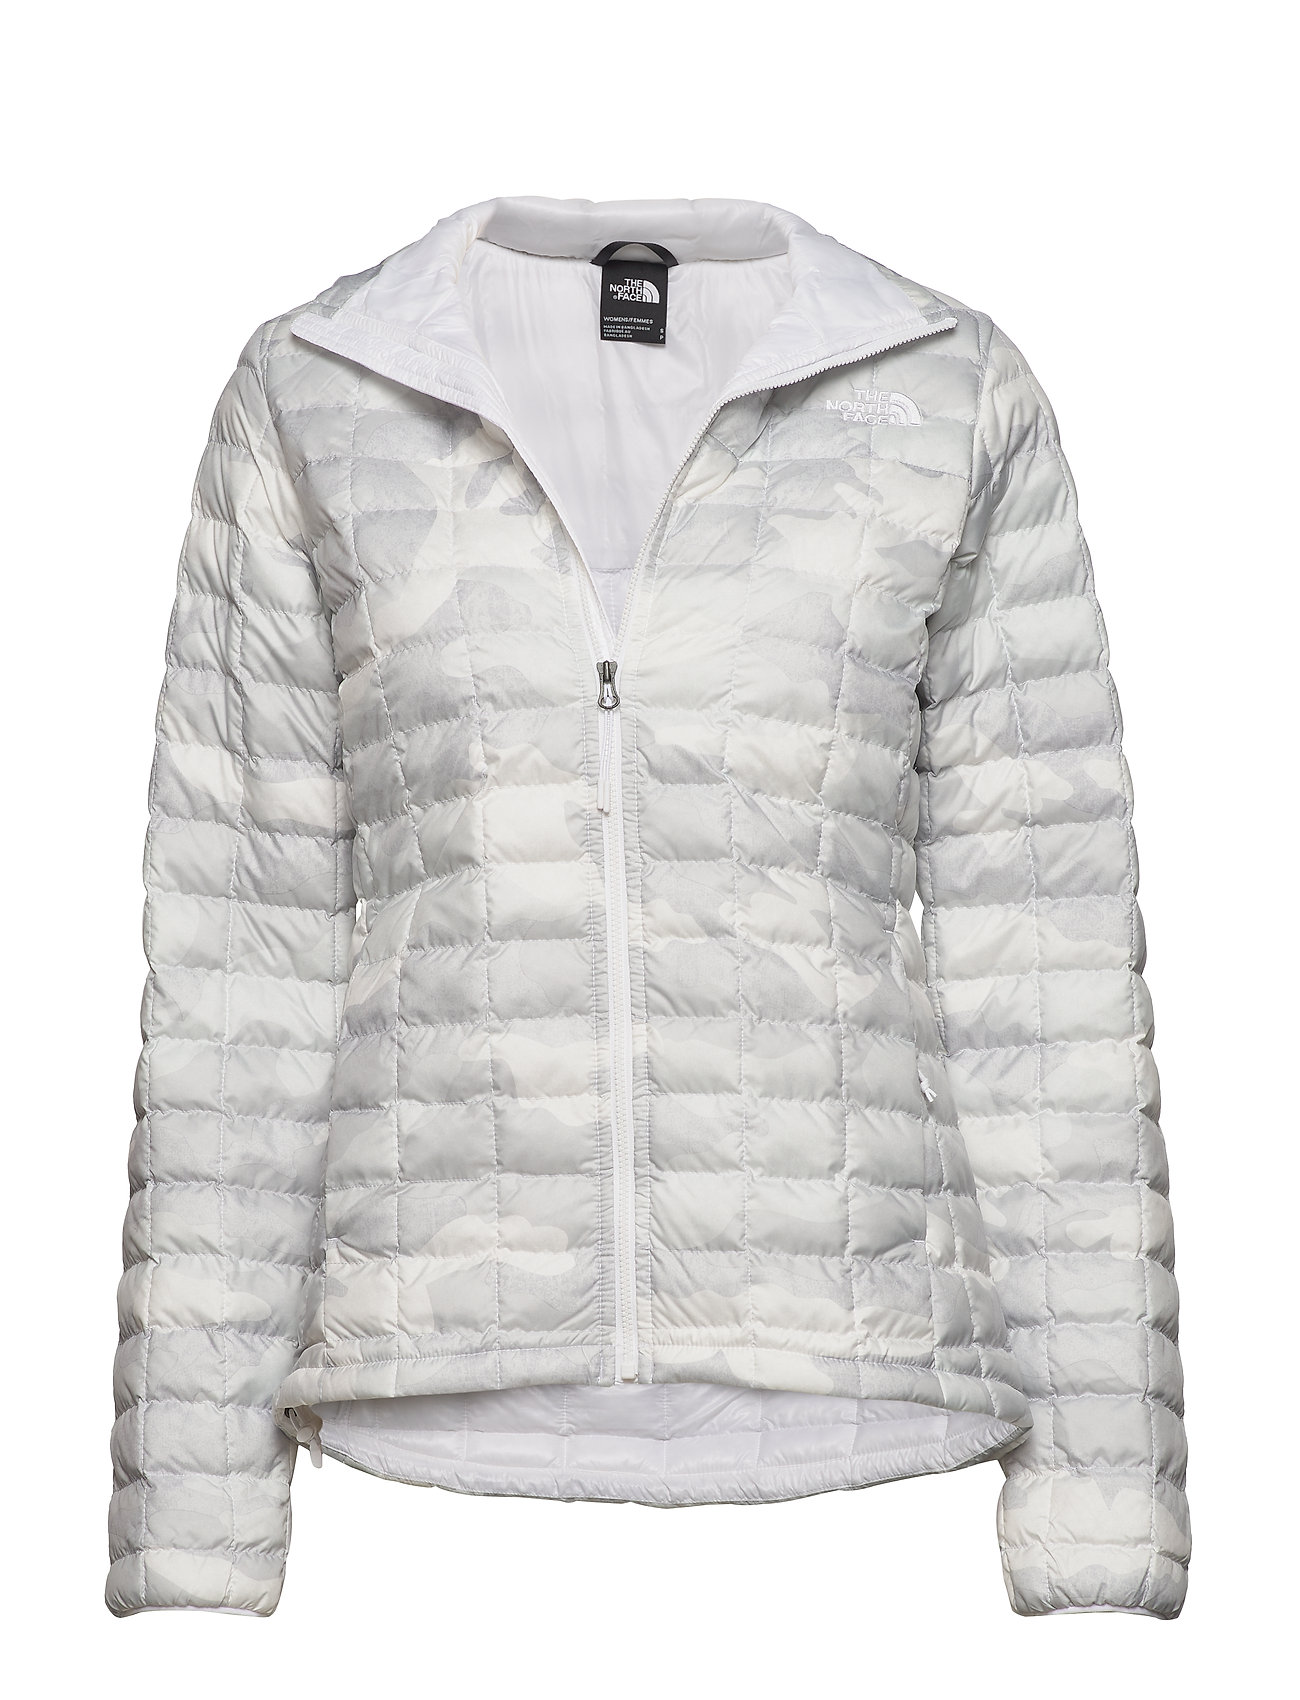 The North Face W THERMOBALL ECO JAC - TNF WHITE WAXED